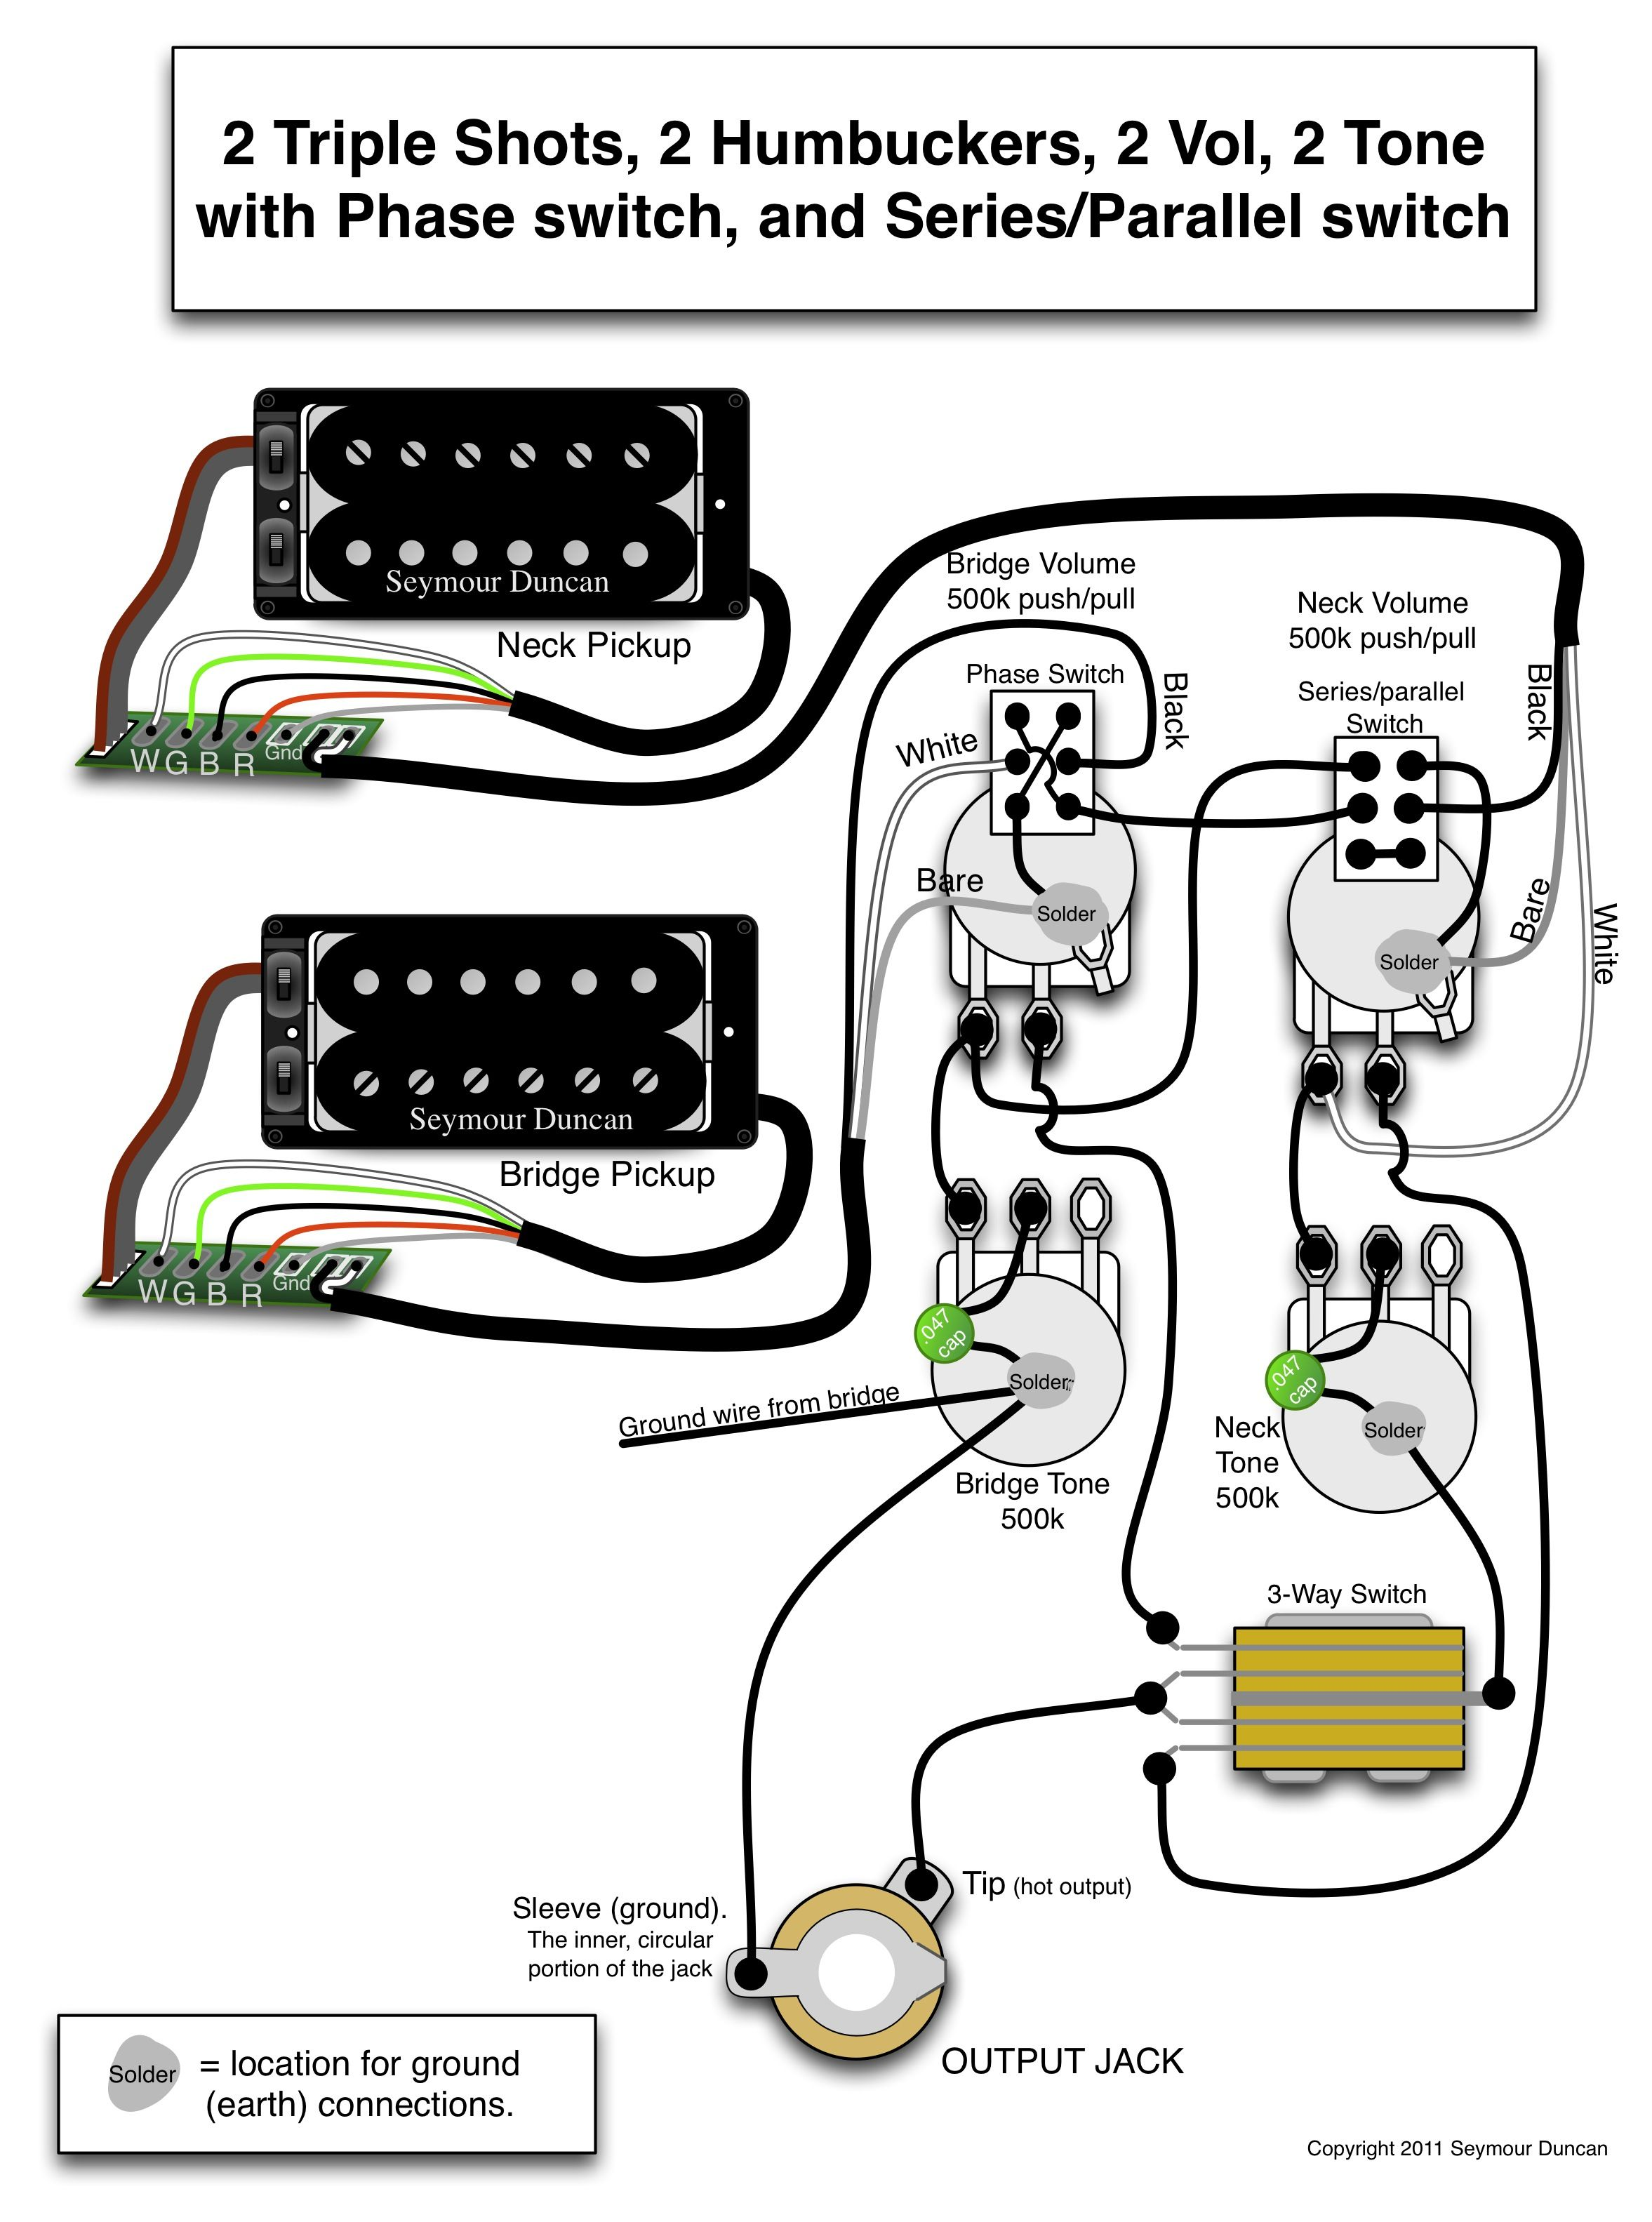 small resolution of seymour duncan wiring diagram 2 triple shots 2 humbuckers 2 vol 2